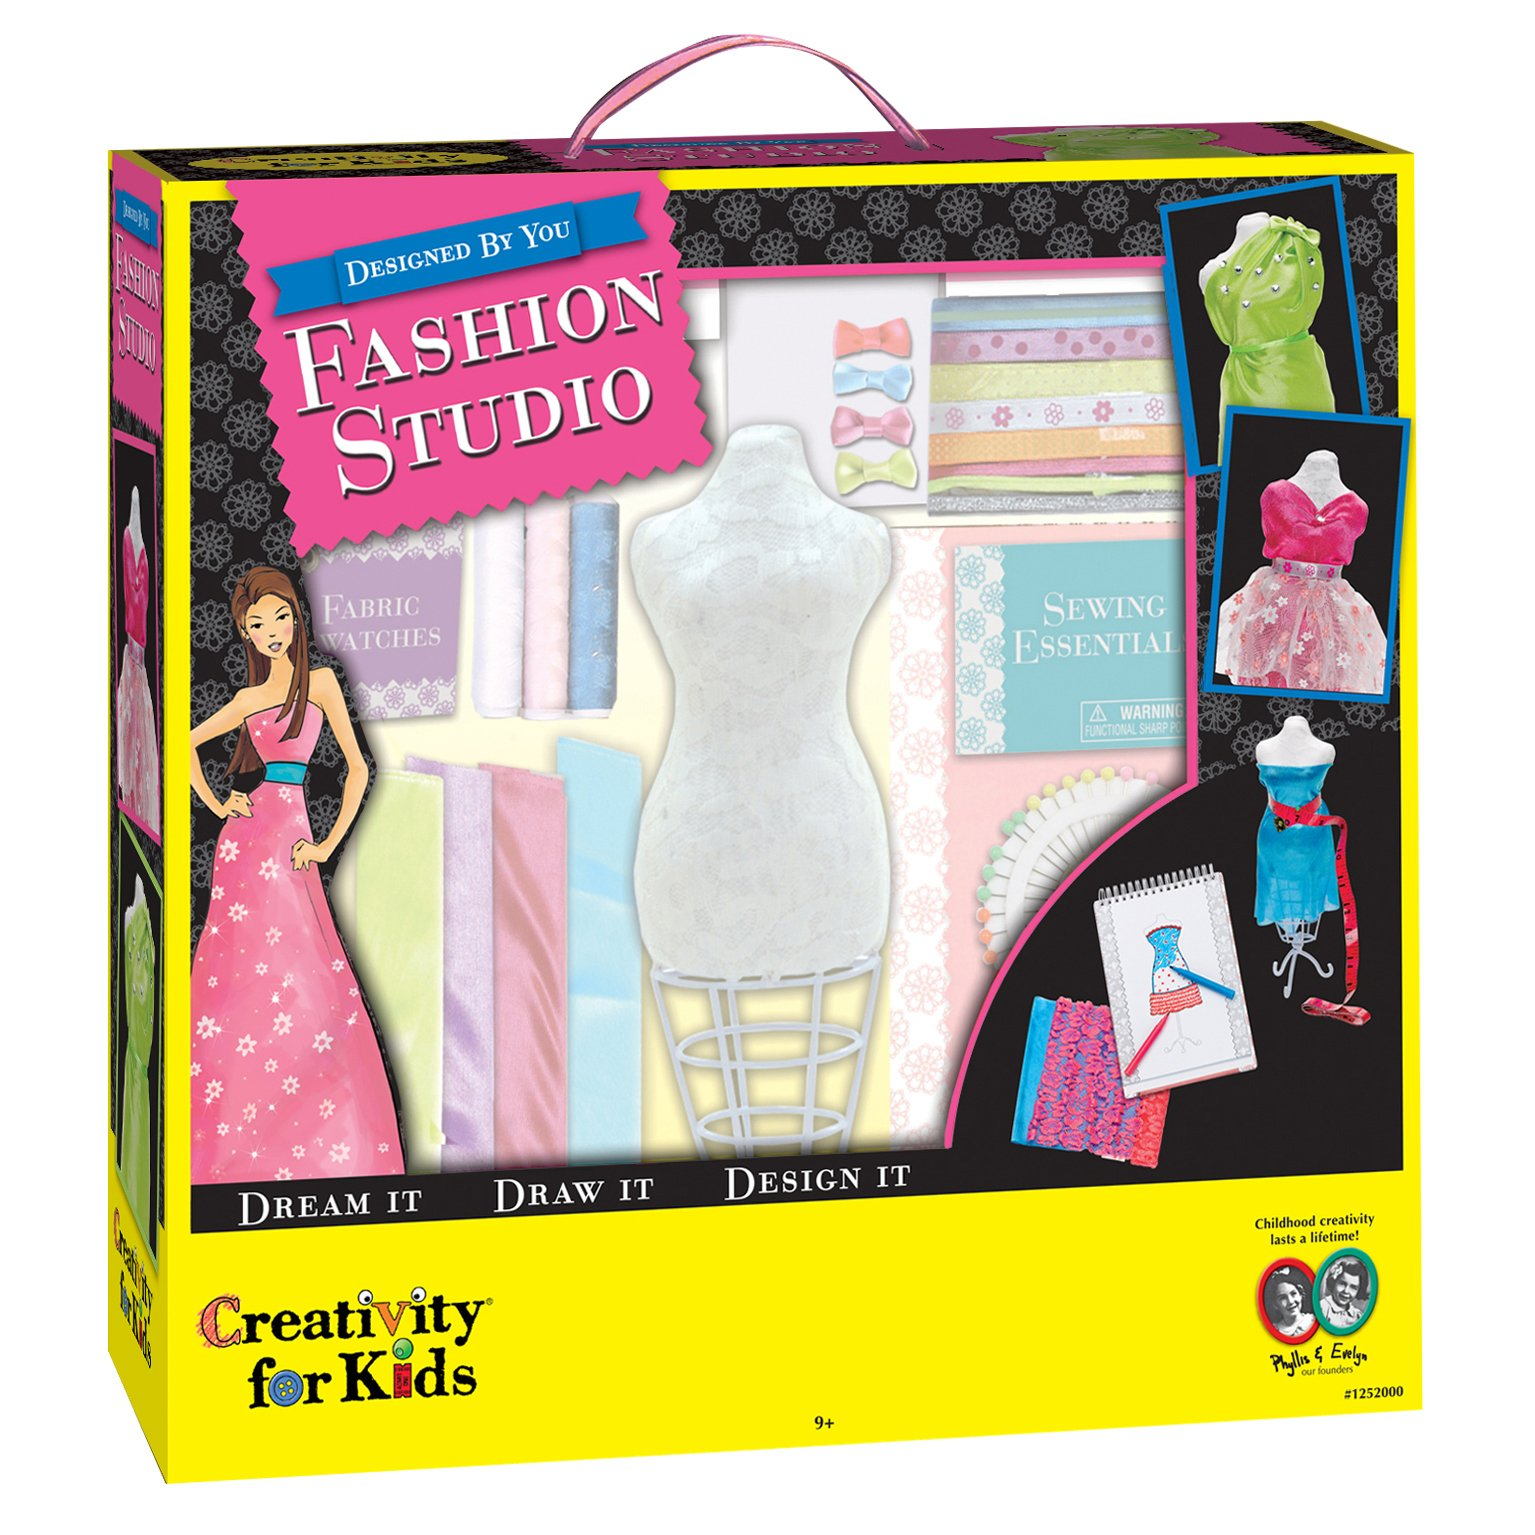 Creativity For Kids Designed By You Fashion Studio Fashion Design Kit For Kids 92633125205 Ebay